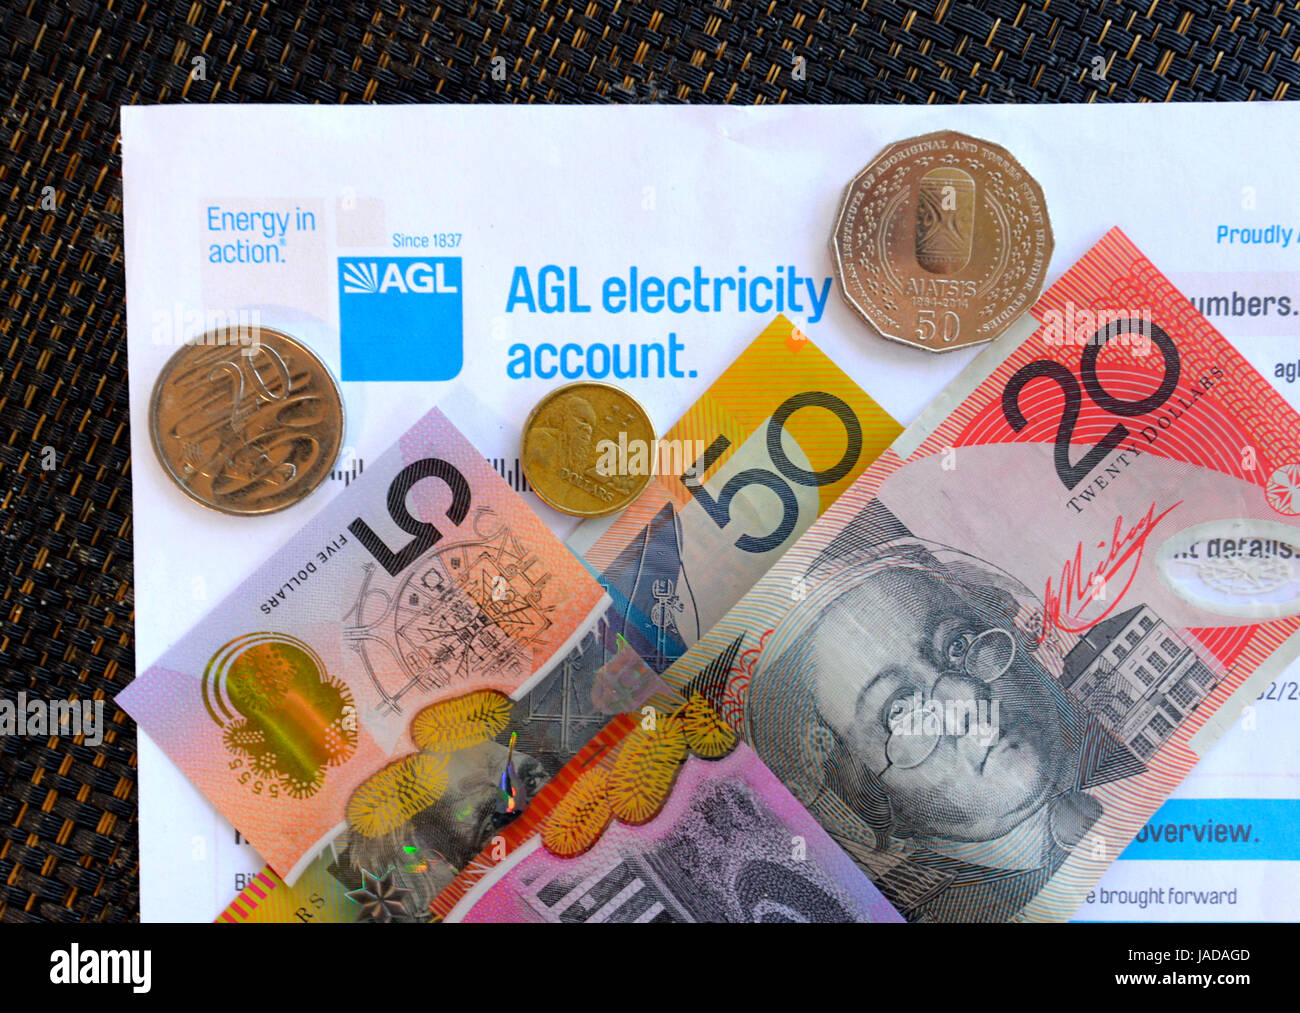 Paying an electricity bill with Australian Currency, Australian Dollars, AUD, Australia - Stock Image